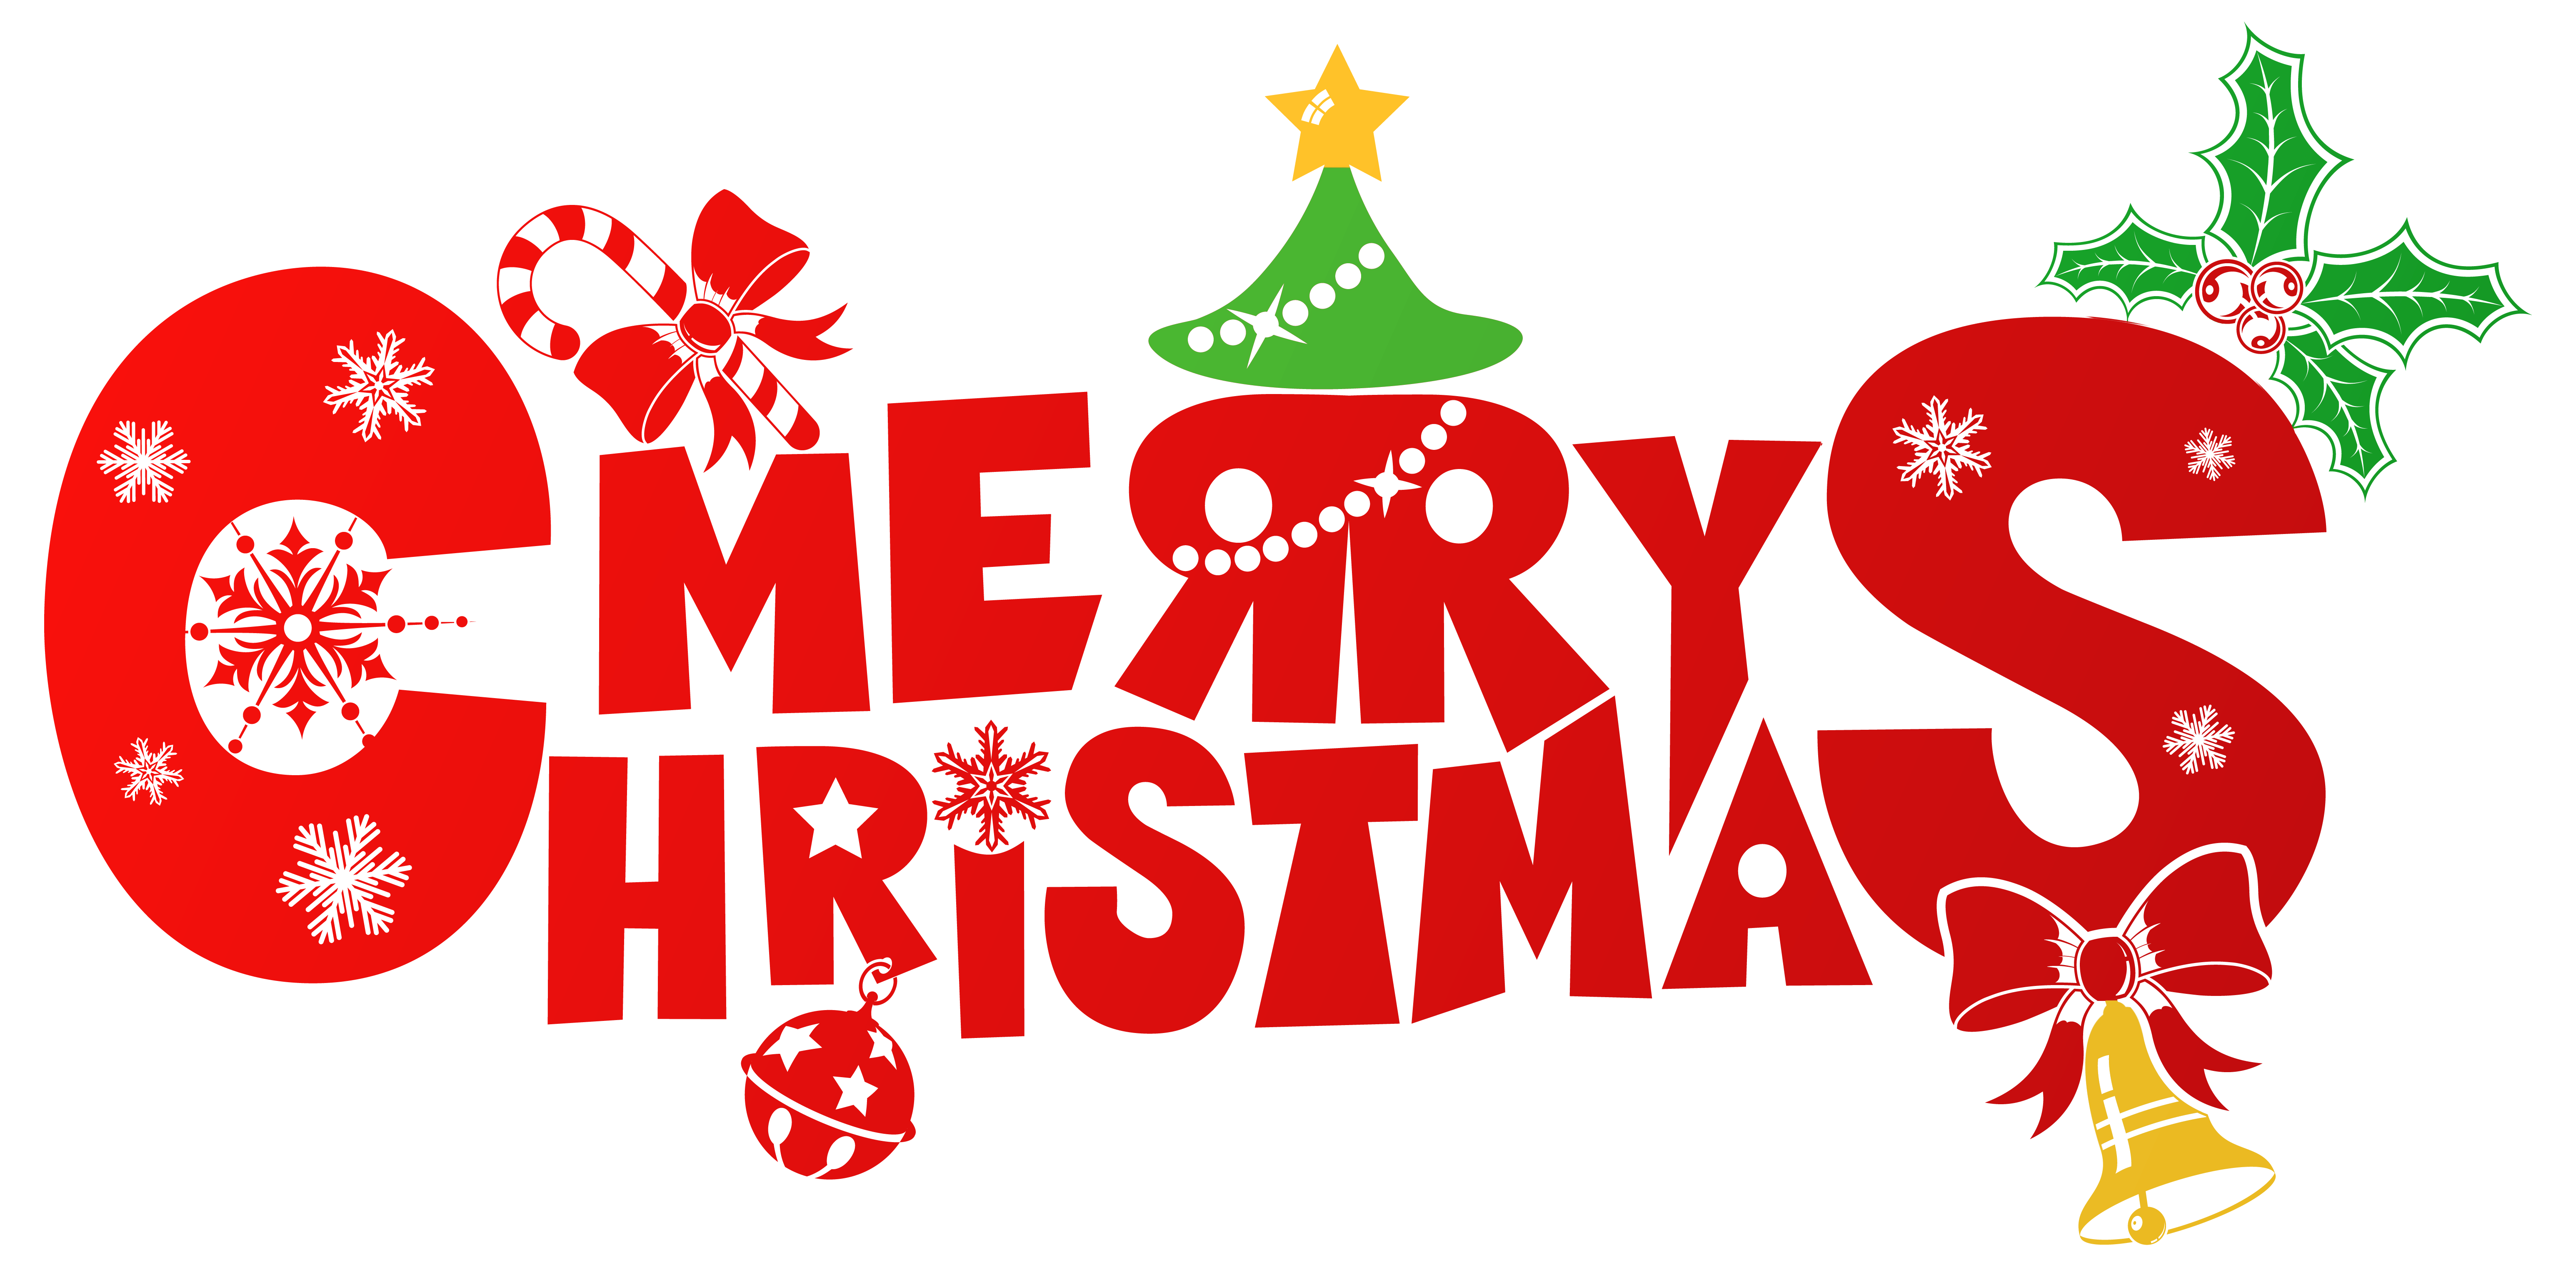 Clipart Merry Christmas & Merry Christmas Clip Art Images.